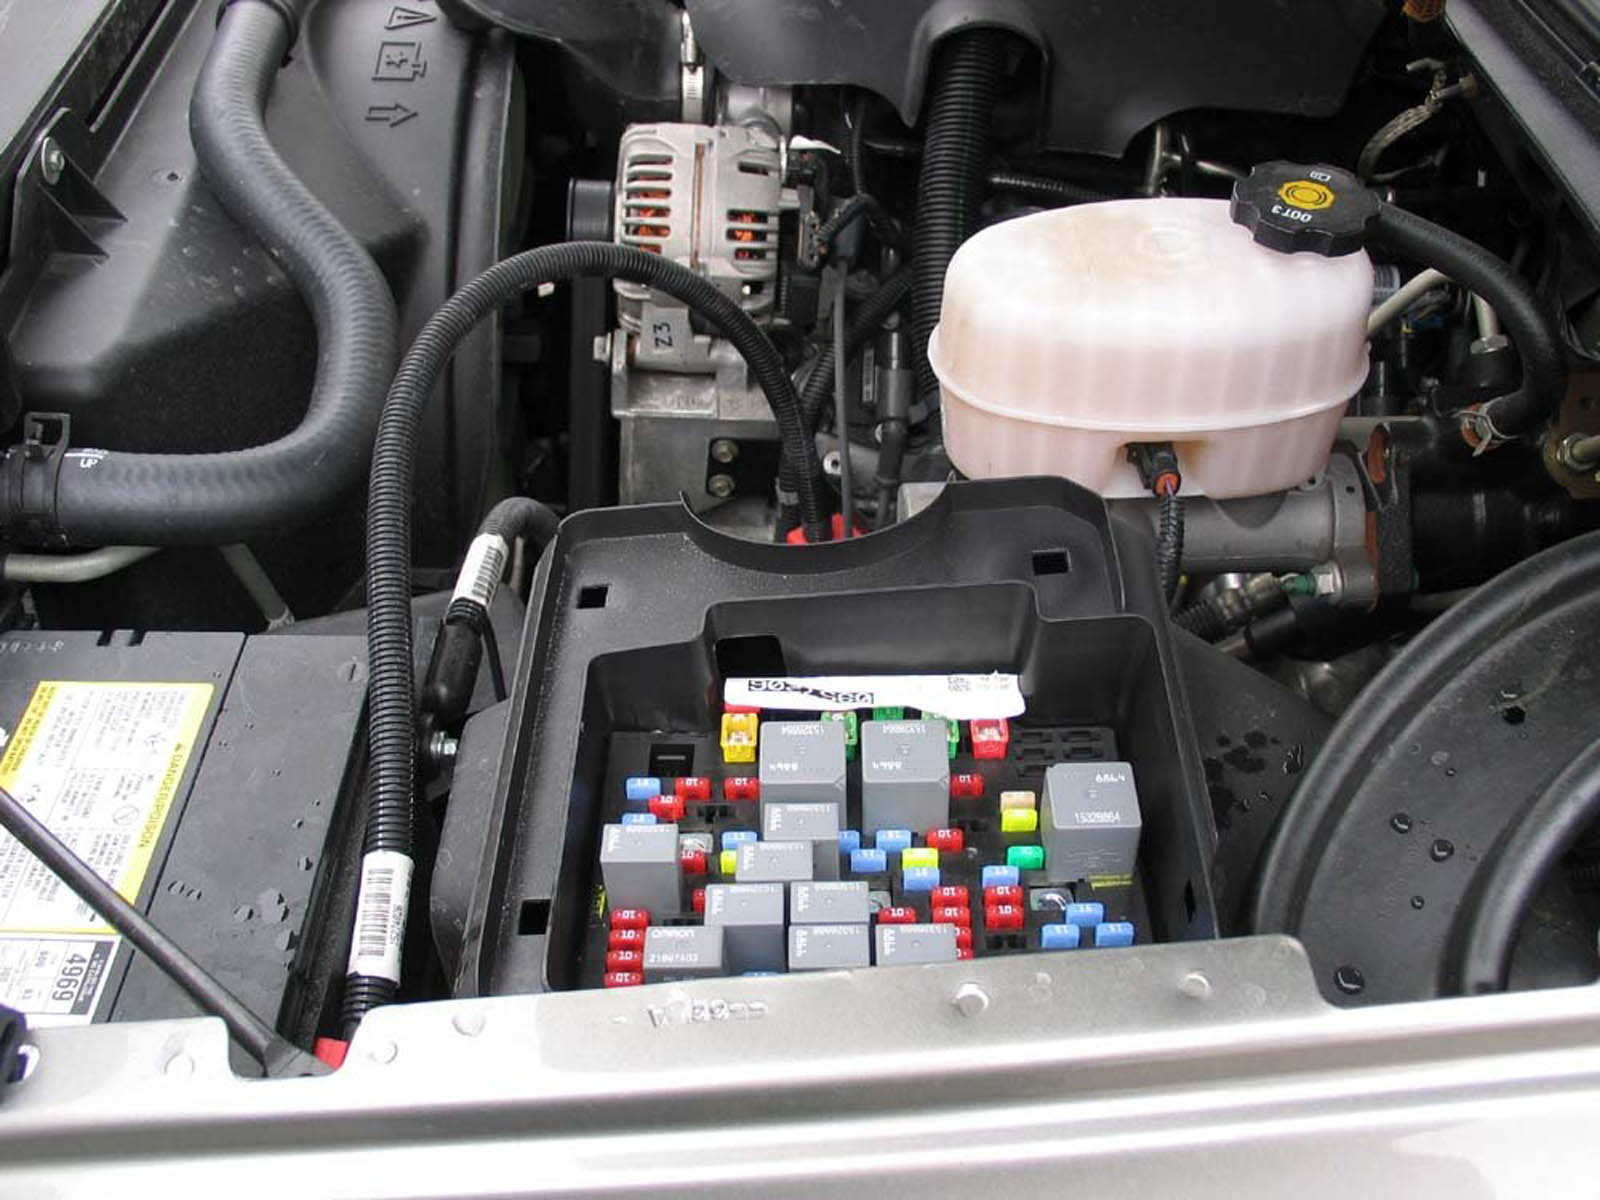 MMMay 27 Fuse Box 04 69845 chevrolet silverado gmt800 1999 2006 fuse box diagram chevroletforum 2003 chevy silverado fuse box diagram at n-0.co